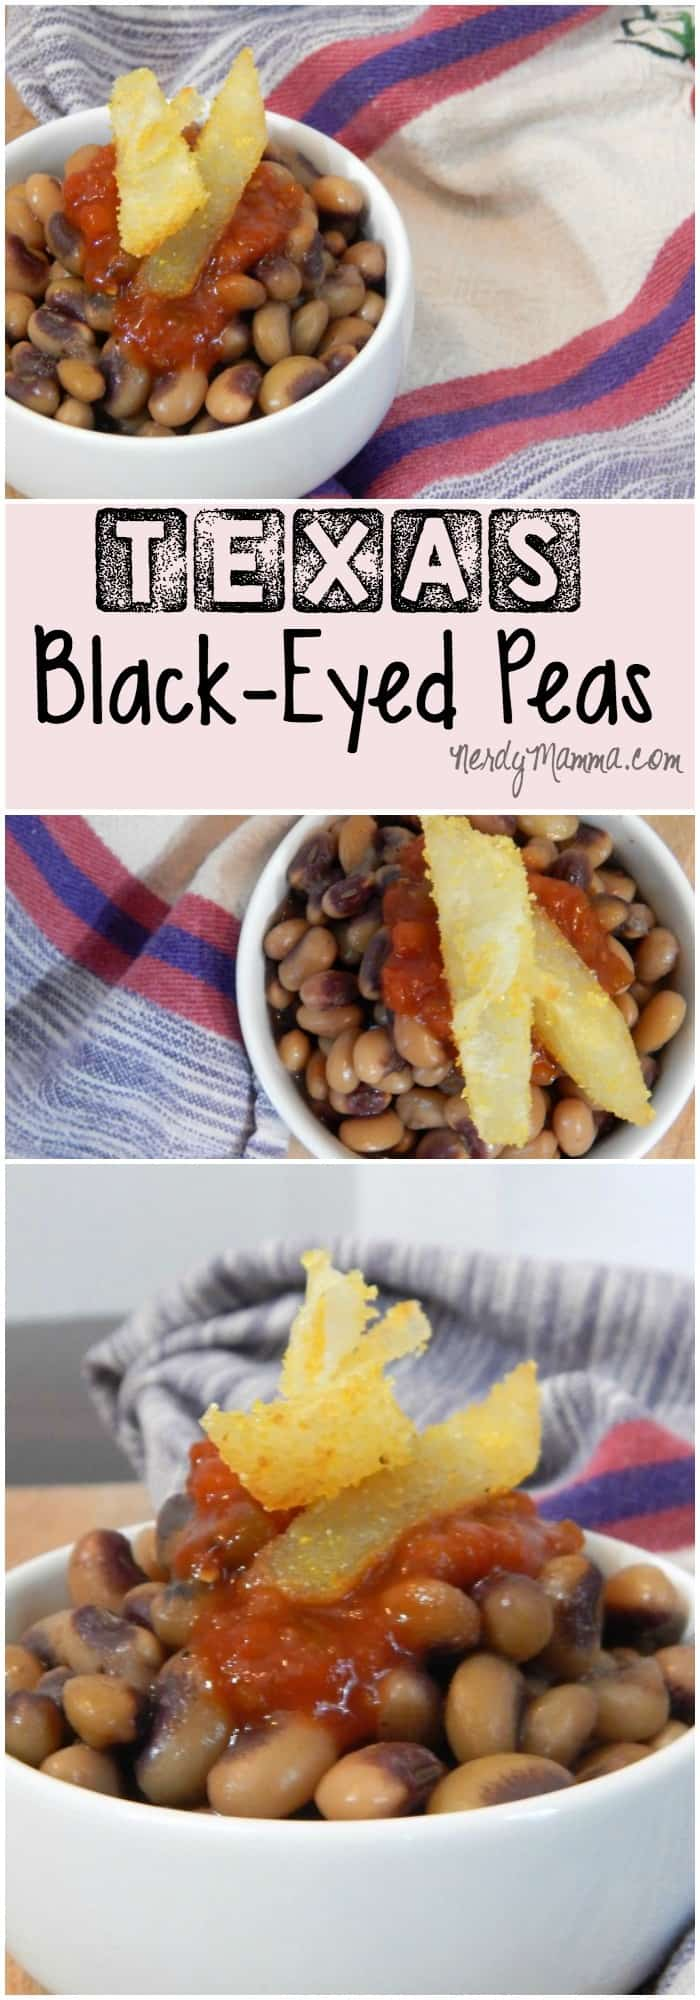 These Texas Black-Eyed Peas are a true southern-style treat. Gluten-Free, these things are good. I could totally eat them every day!